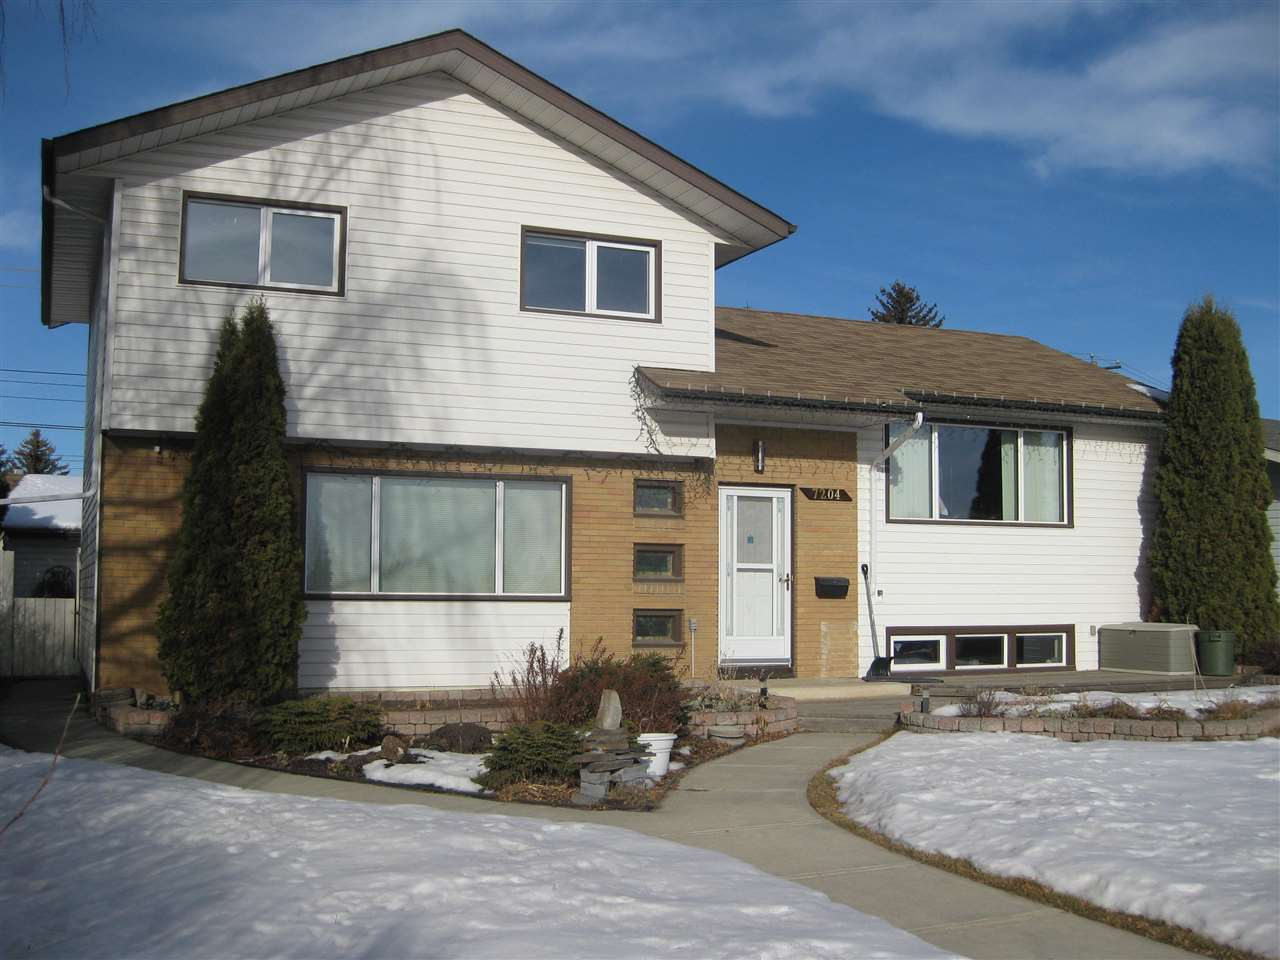 Fantastic family home in desirable Ottewell!  This Golden Homes built 4 level split has 4 generous sized bedrooms, fully finished 3rd and fourth levels with a total of over 2000 sq ft of living space.  This home has been upgraded from original including a gorgeous Maple kitchen with cupboards, pantry and desk area spanning the bright space, open to dining area.  This home has a spacious  living room, overlooking your front deck and beautifully landscaped yard, across from Clara Tyner school.  A second family room, bedroom and bathroom completes the third level which sits at ground level.  Walk out to a massive deck and to your oversized garage, paved driveway with RV parking. All the windows in this home have been re-done with triple glazed.  Other upgrades include: shingles, vinyl siding with added insulation, bathrooms re-done, flooring, cedar decks front and back.  In addition to a beautiful home inside & out  is a prime location near schools, shopping, easy access to downtown by car or transit.